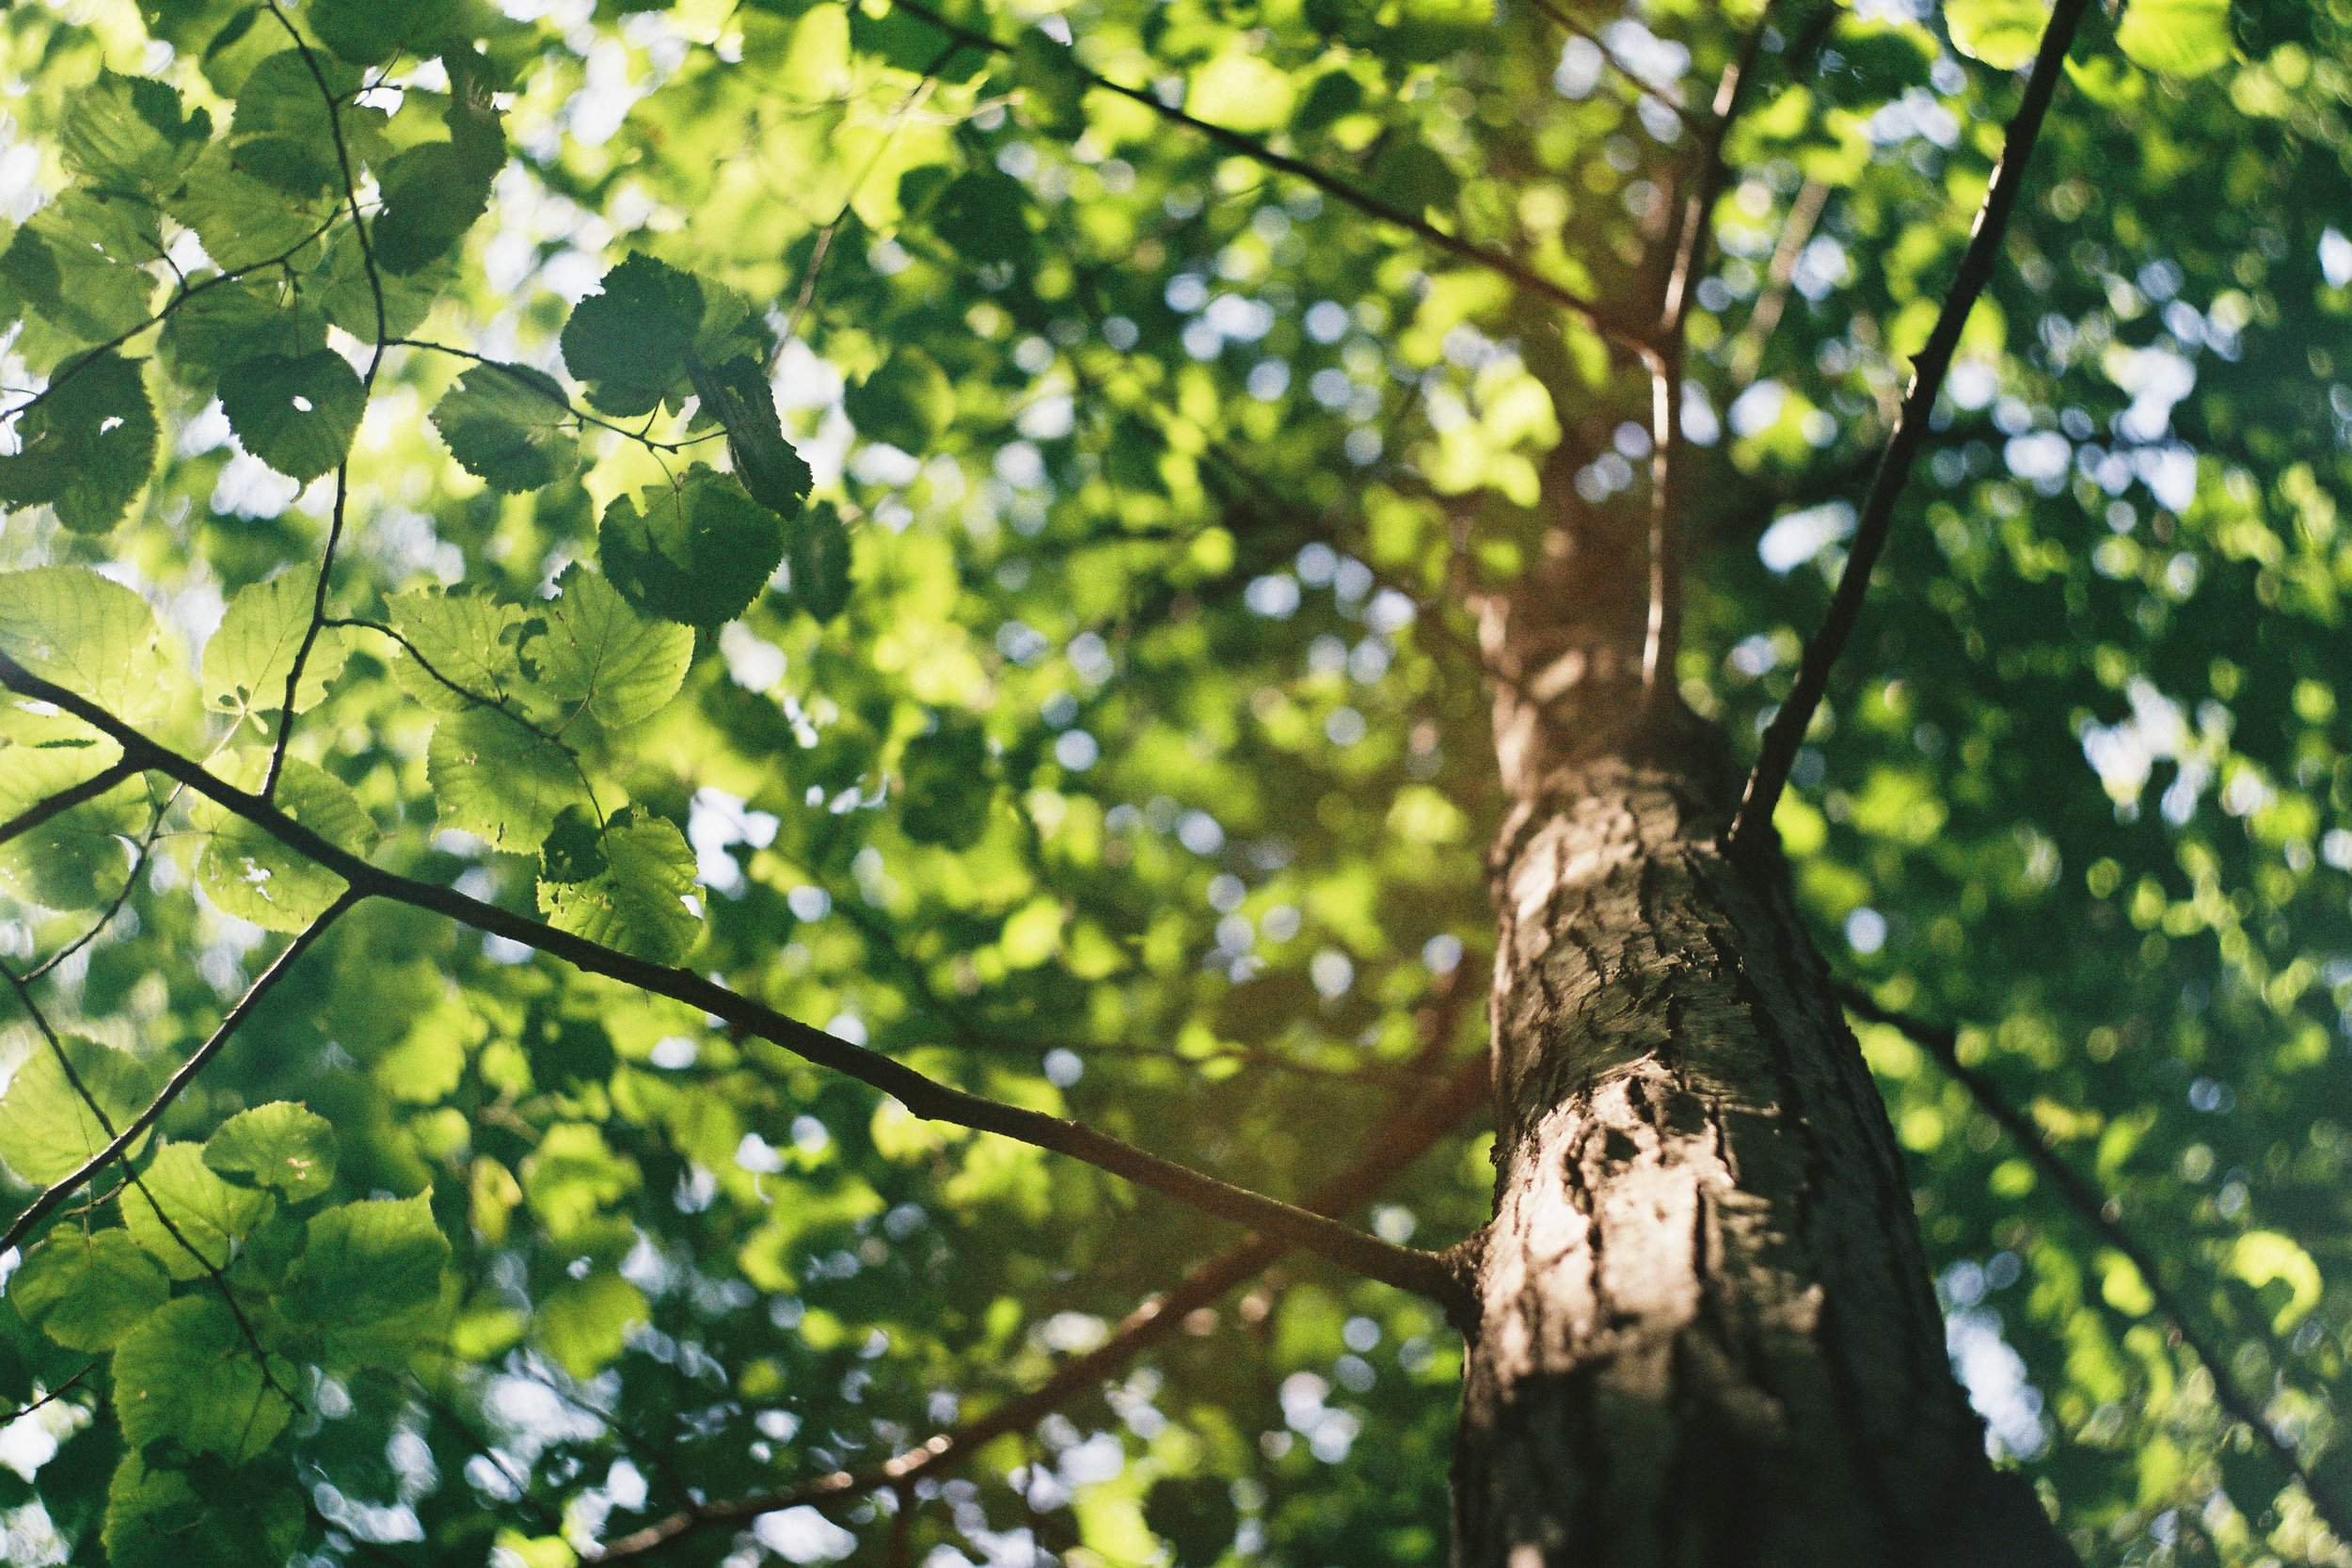 5 Common Tree Diseases in Indiana - What to watch for & how to treat